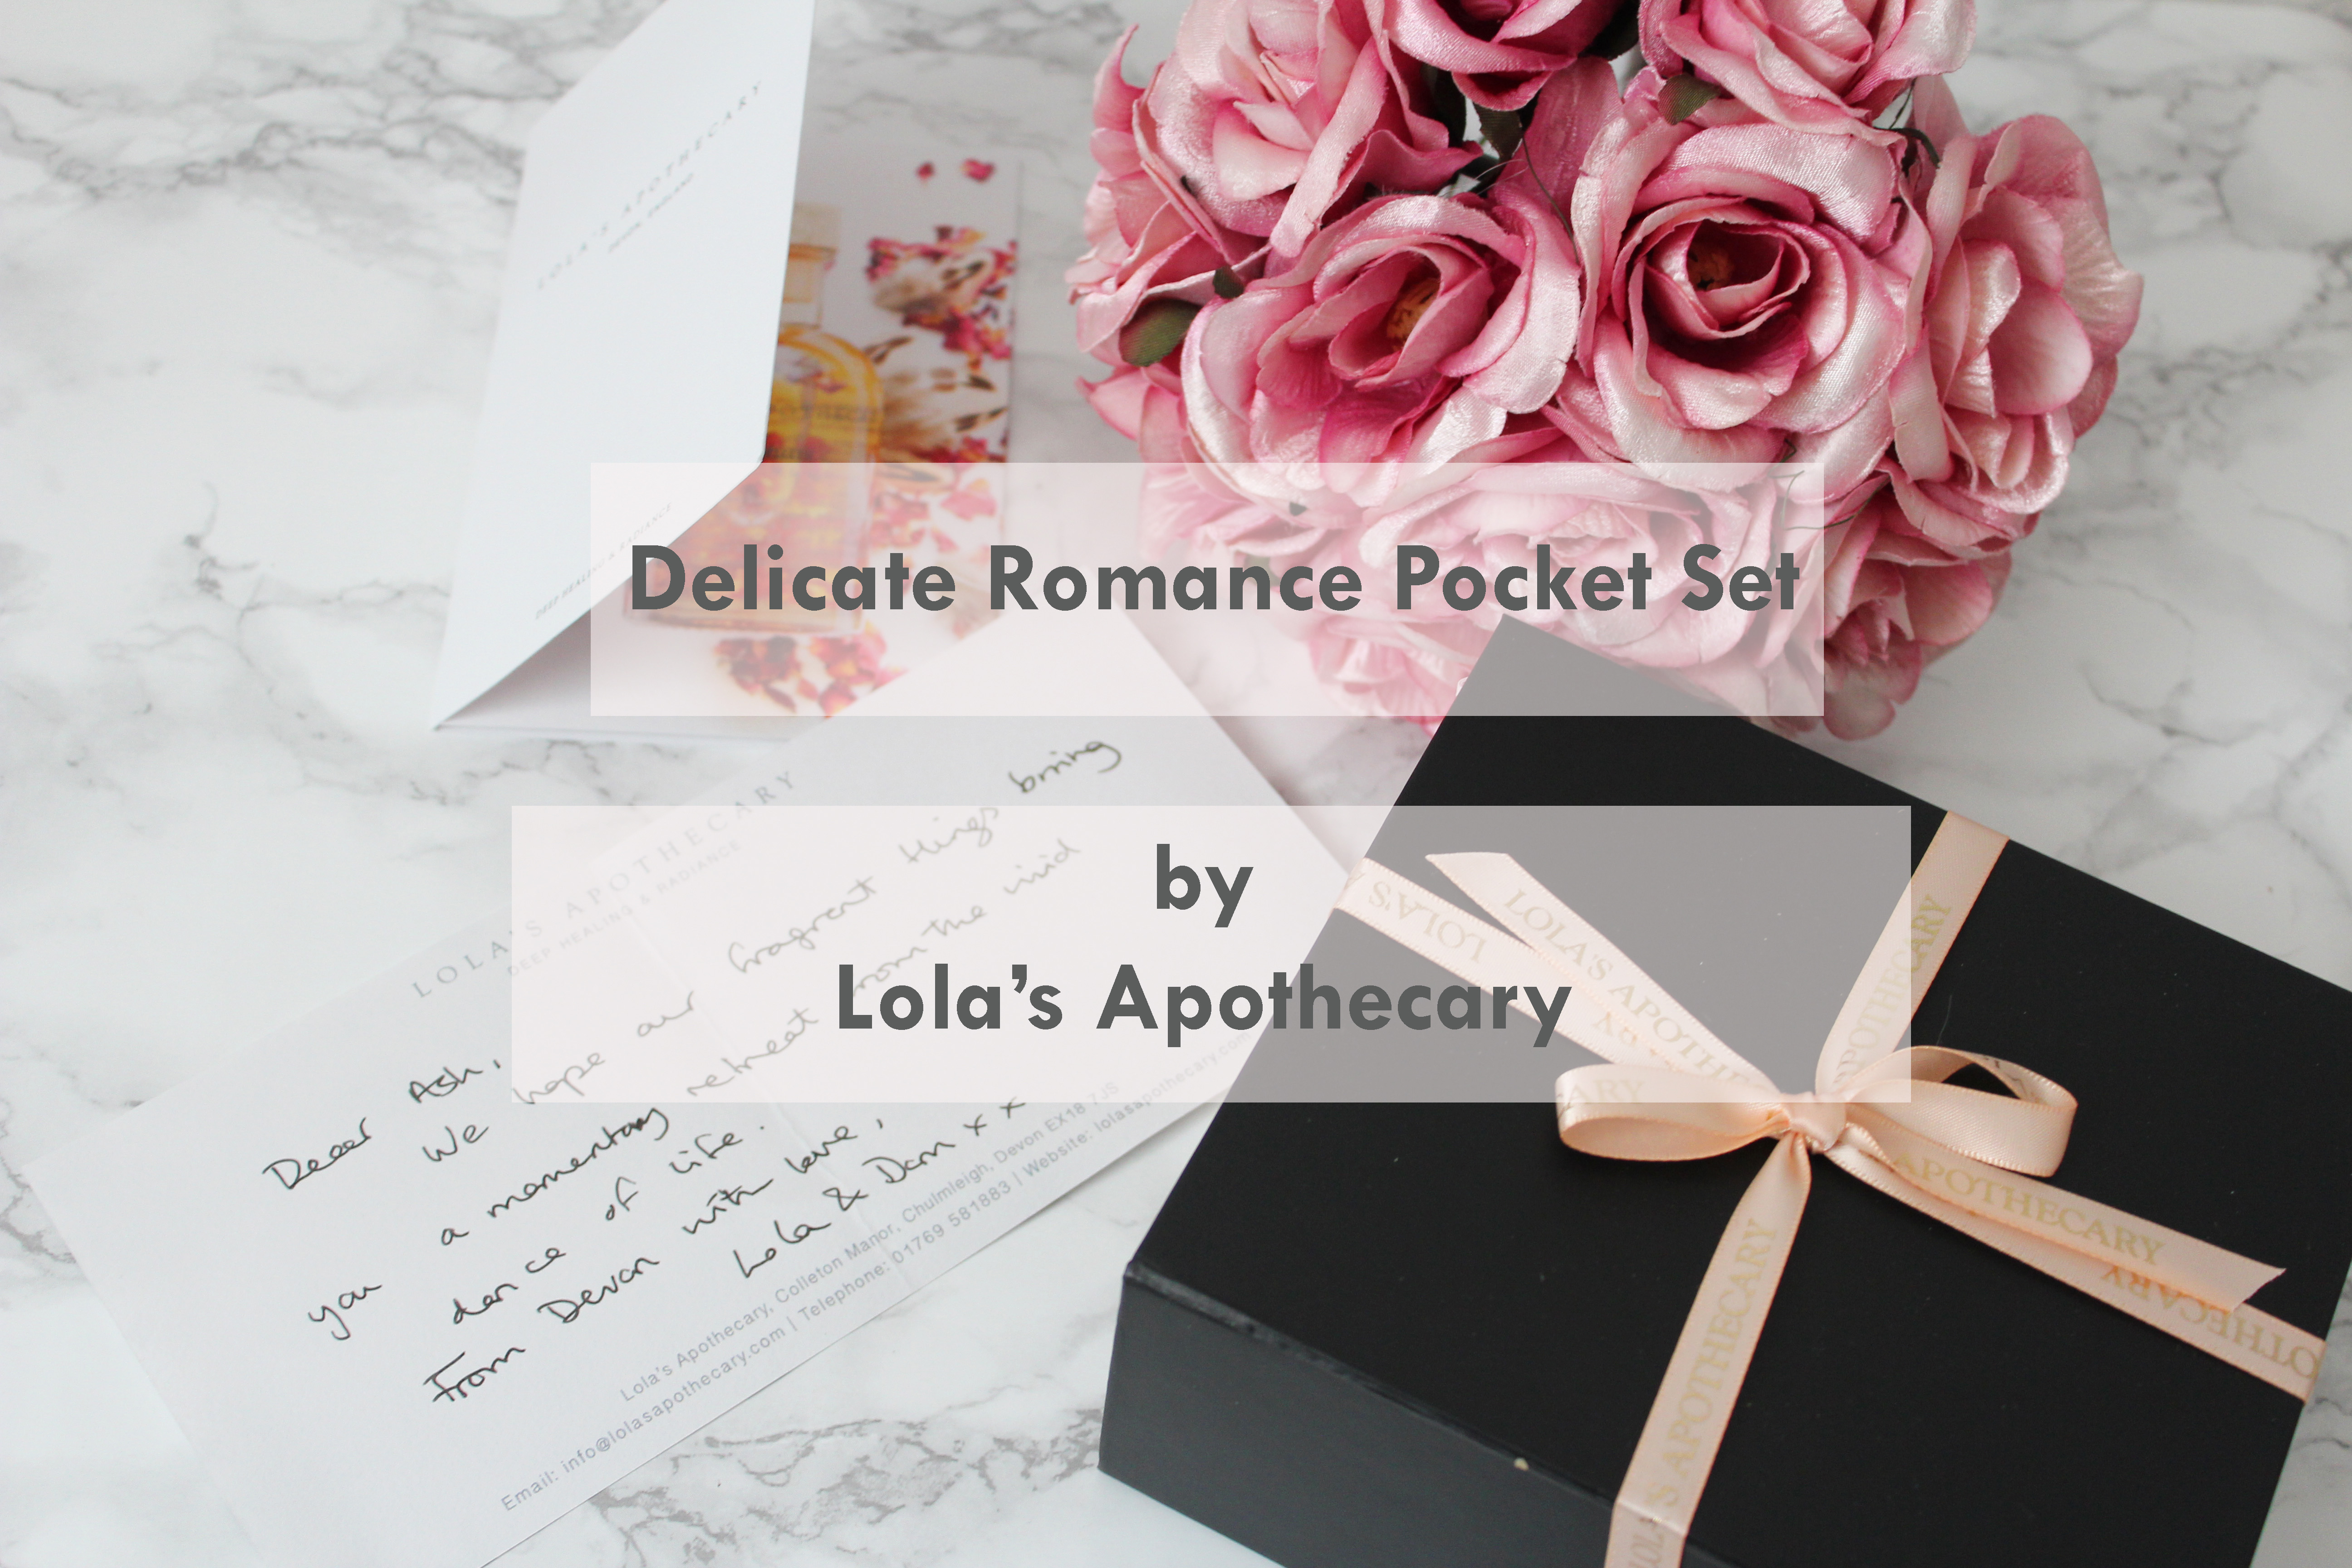 Delicate Romance Pocket set